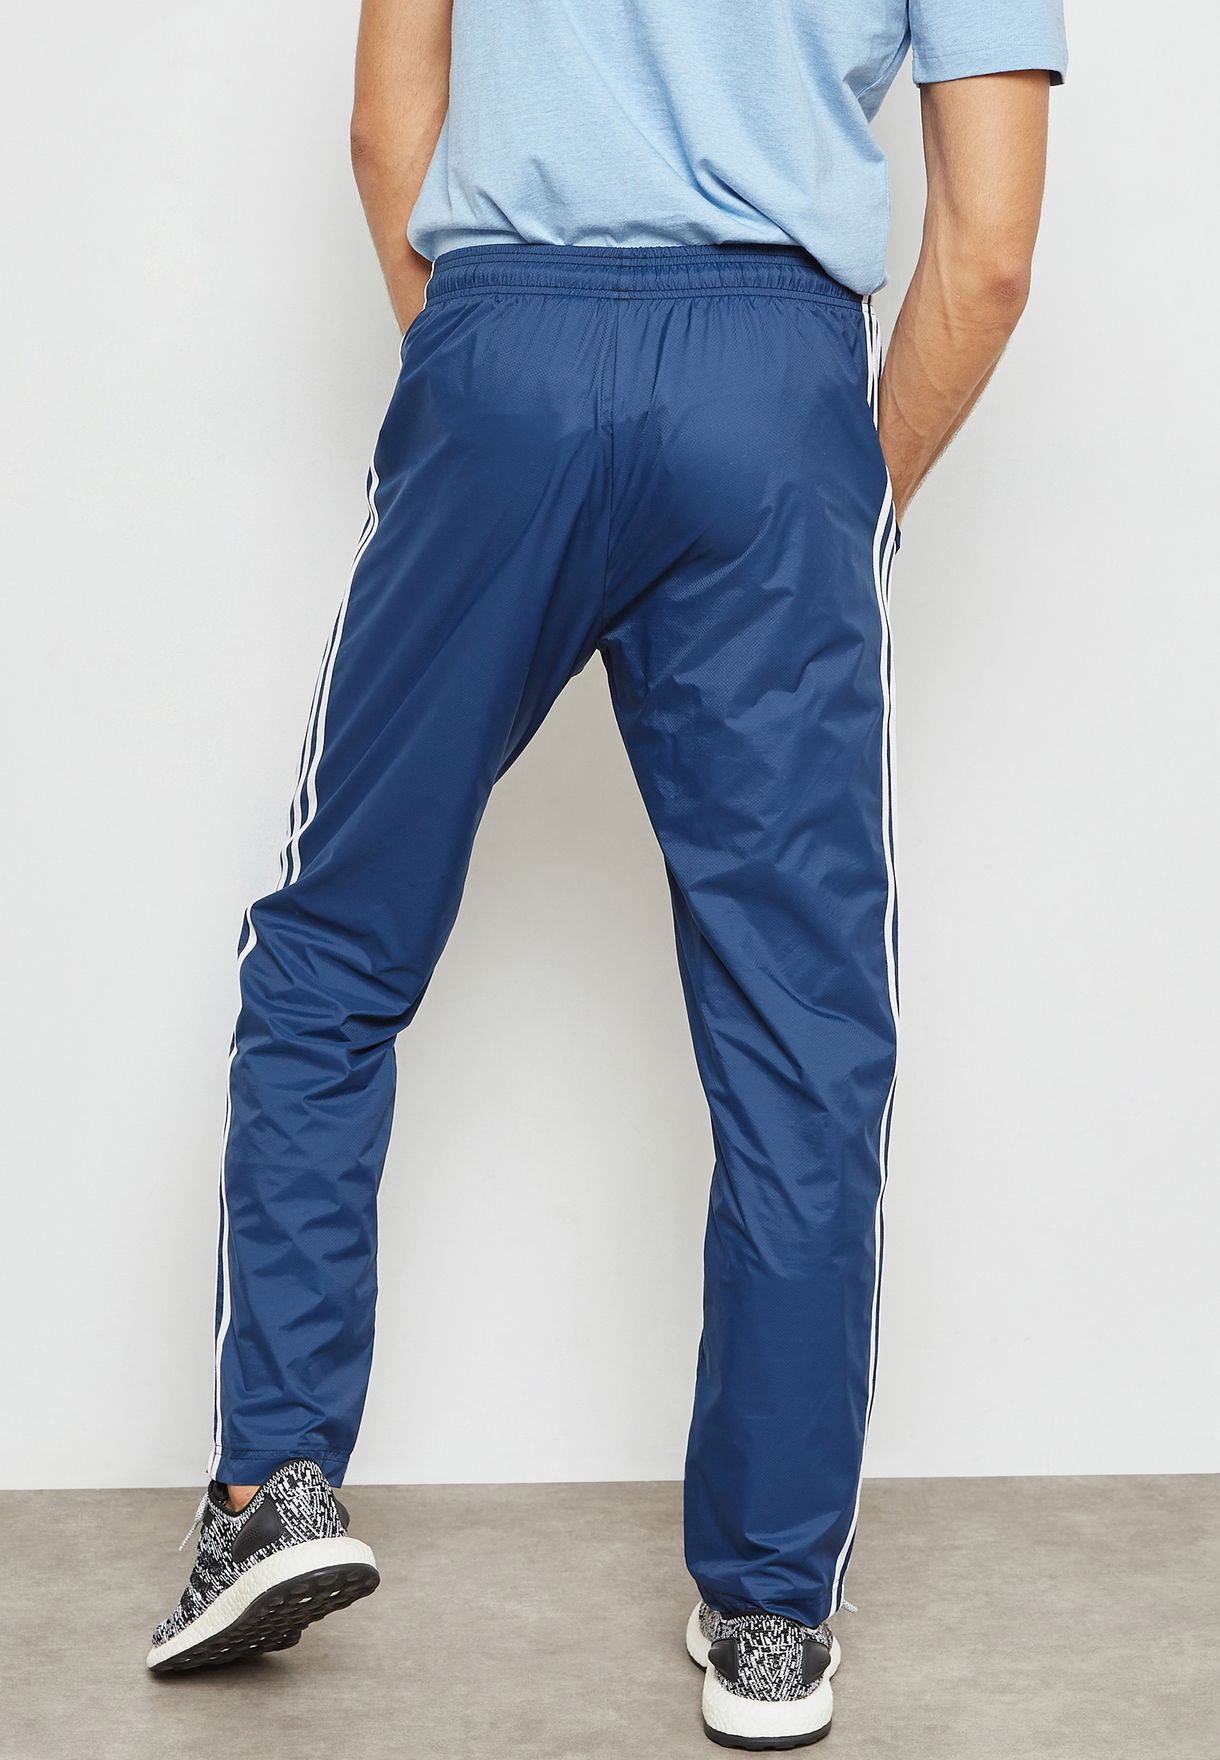 Giotto Dibondon celestial Irónico  Buy adidas blue Essential 3 Stripe Sweatpants for Men in MENA, Worldwide |  CD7078